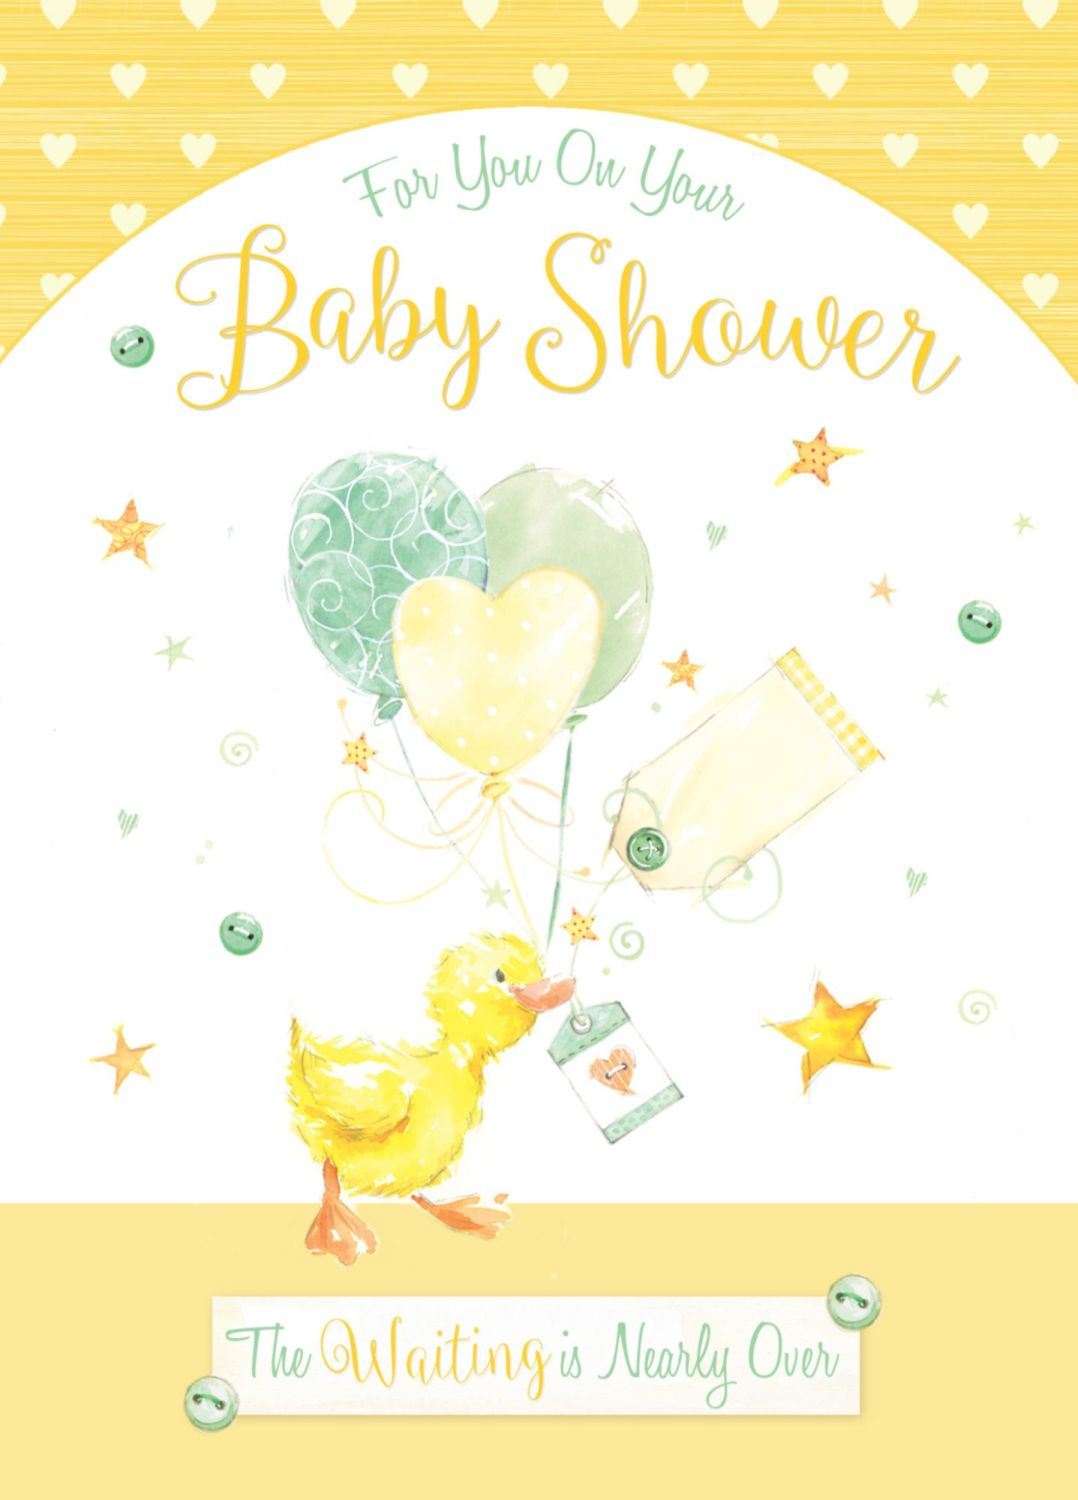 Duckling Baby Shower Card - The WAITING Is NEARLY Over - BABY Shower CARDS